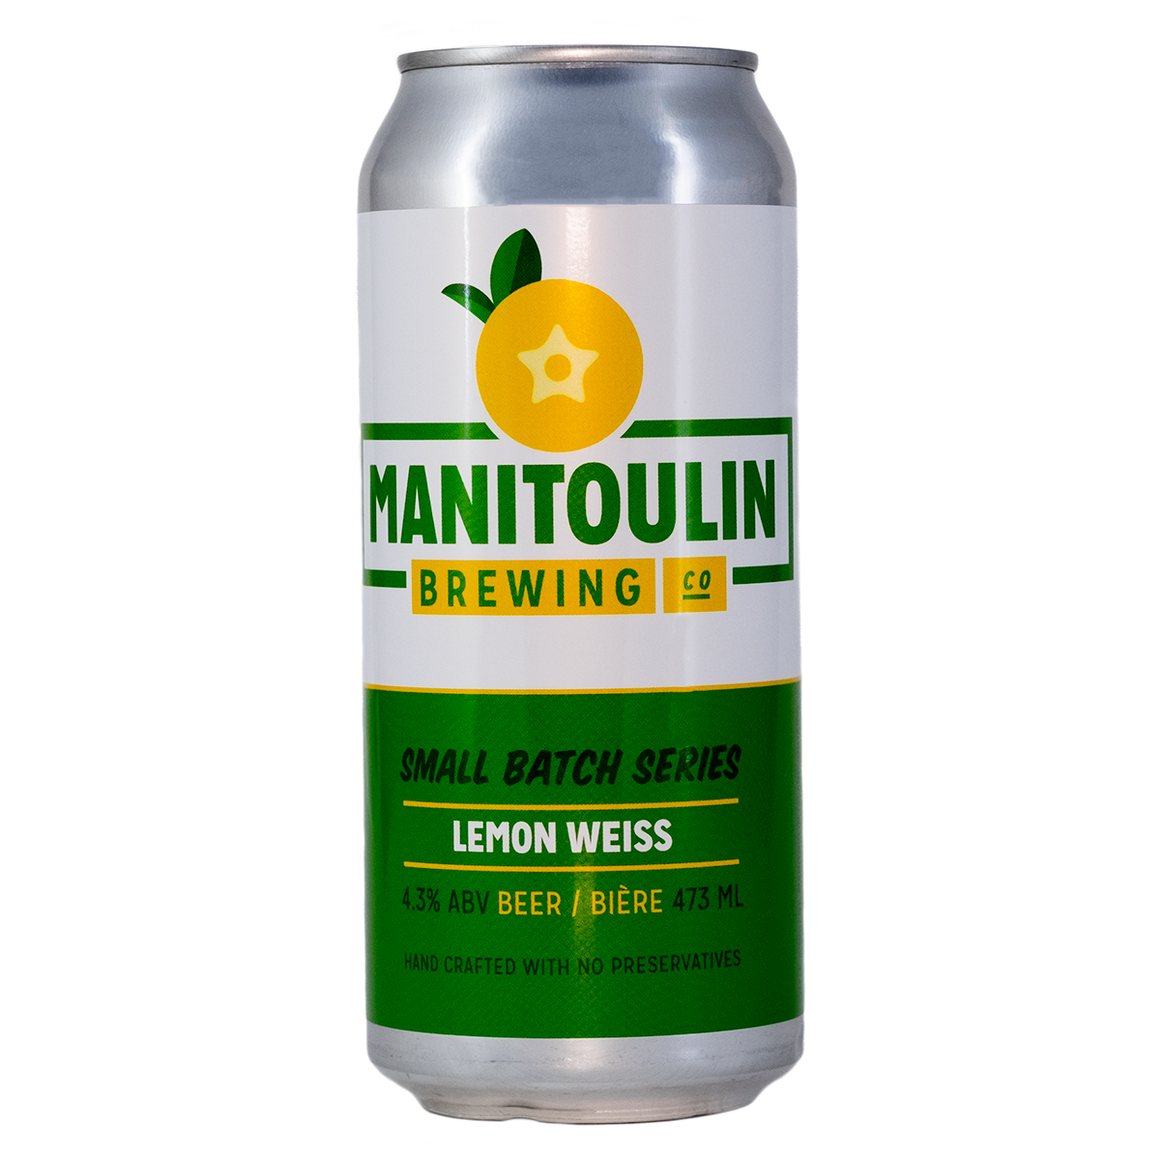 Manitoulin Lemon Weiss - Wheat Beer